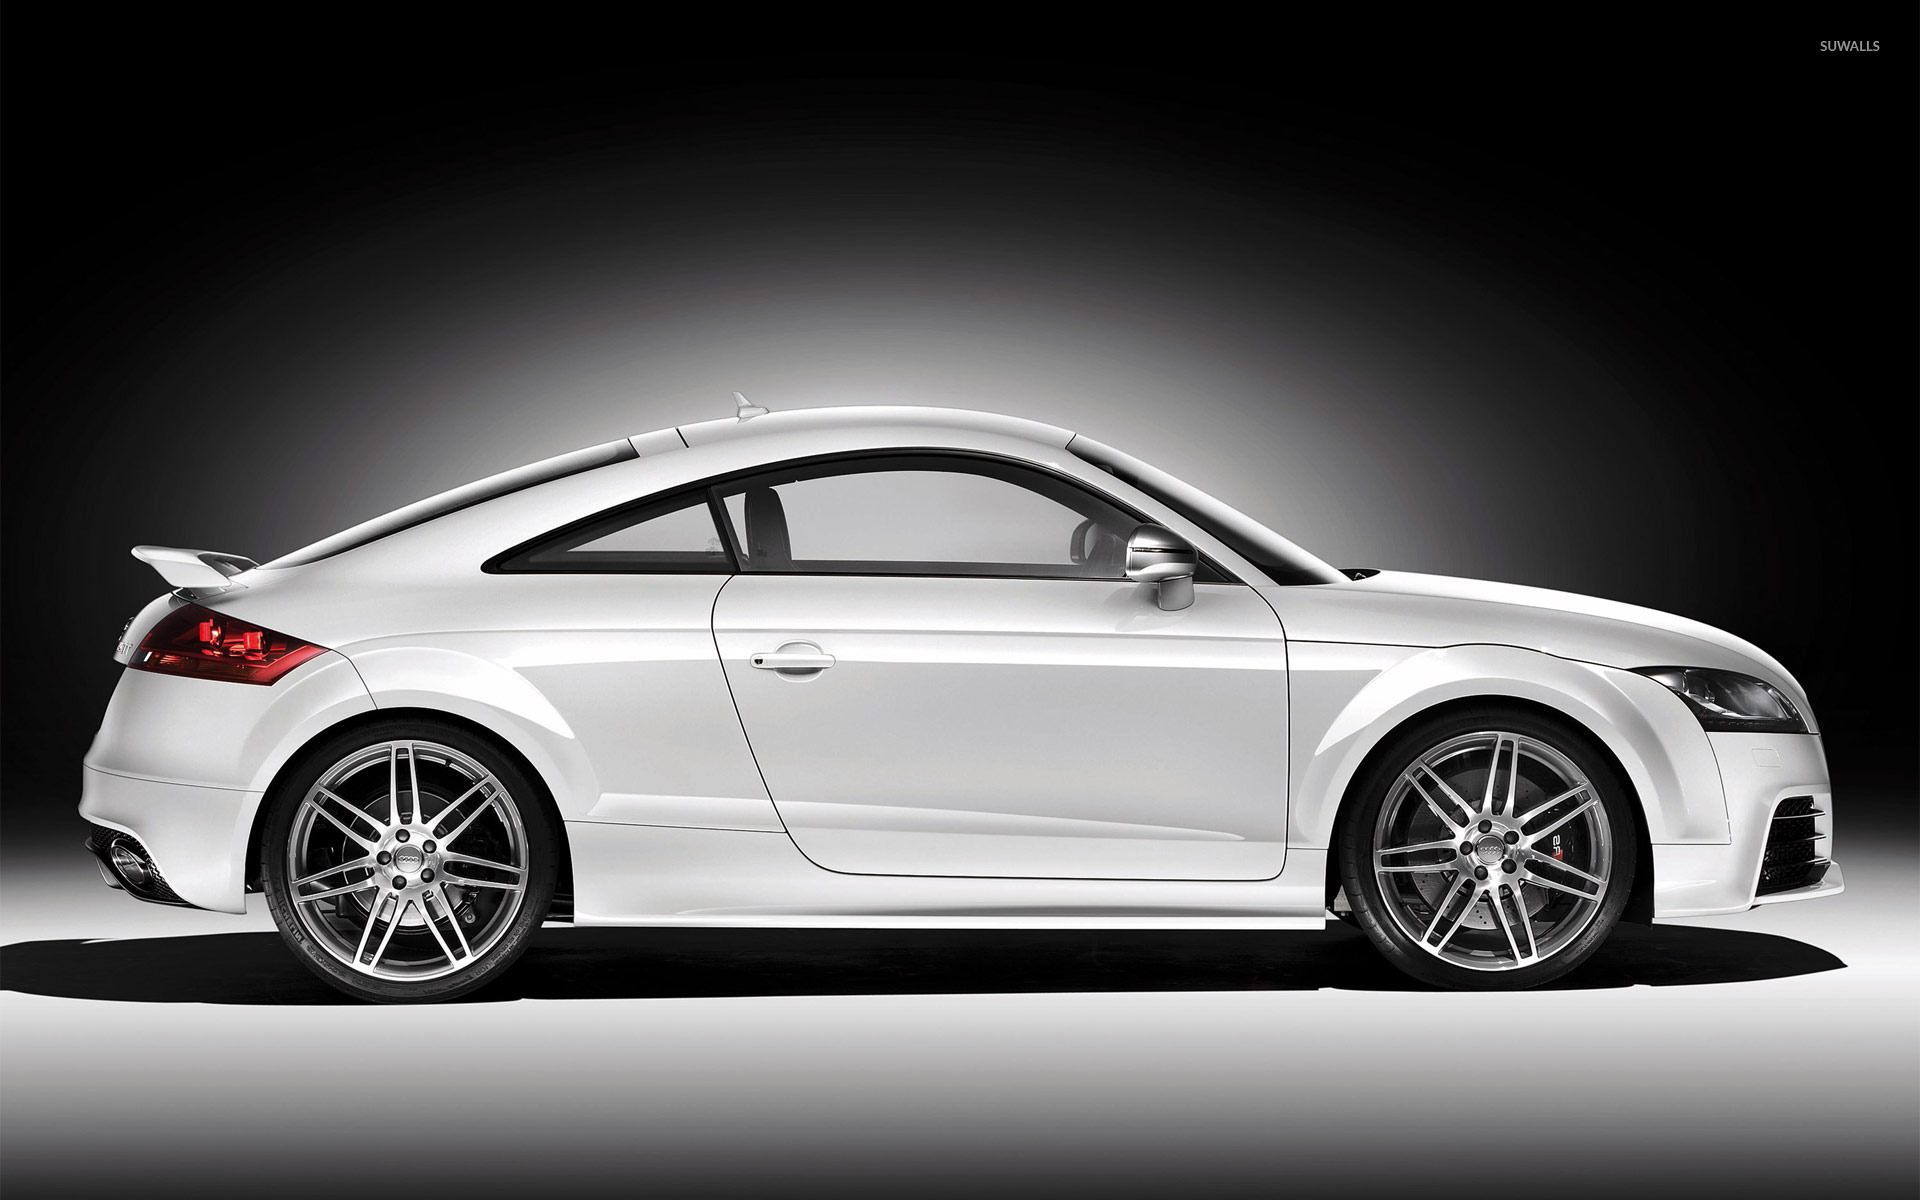 Audi TT RS Coupe wallpaper - Car wallpapers - #19478